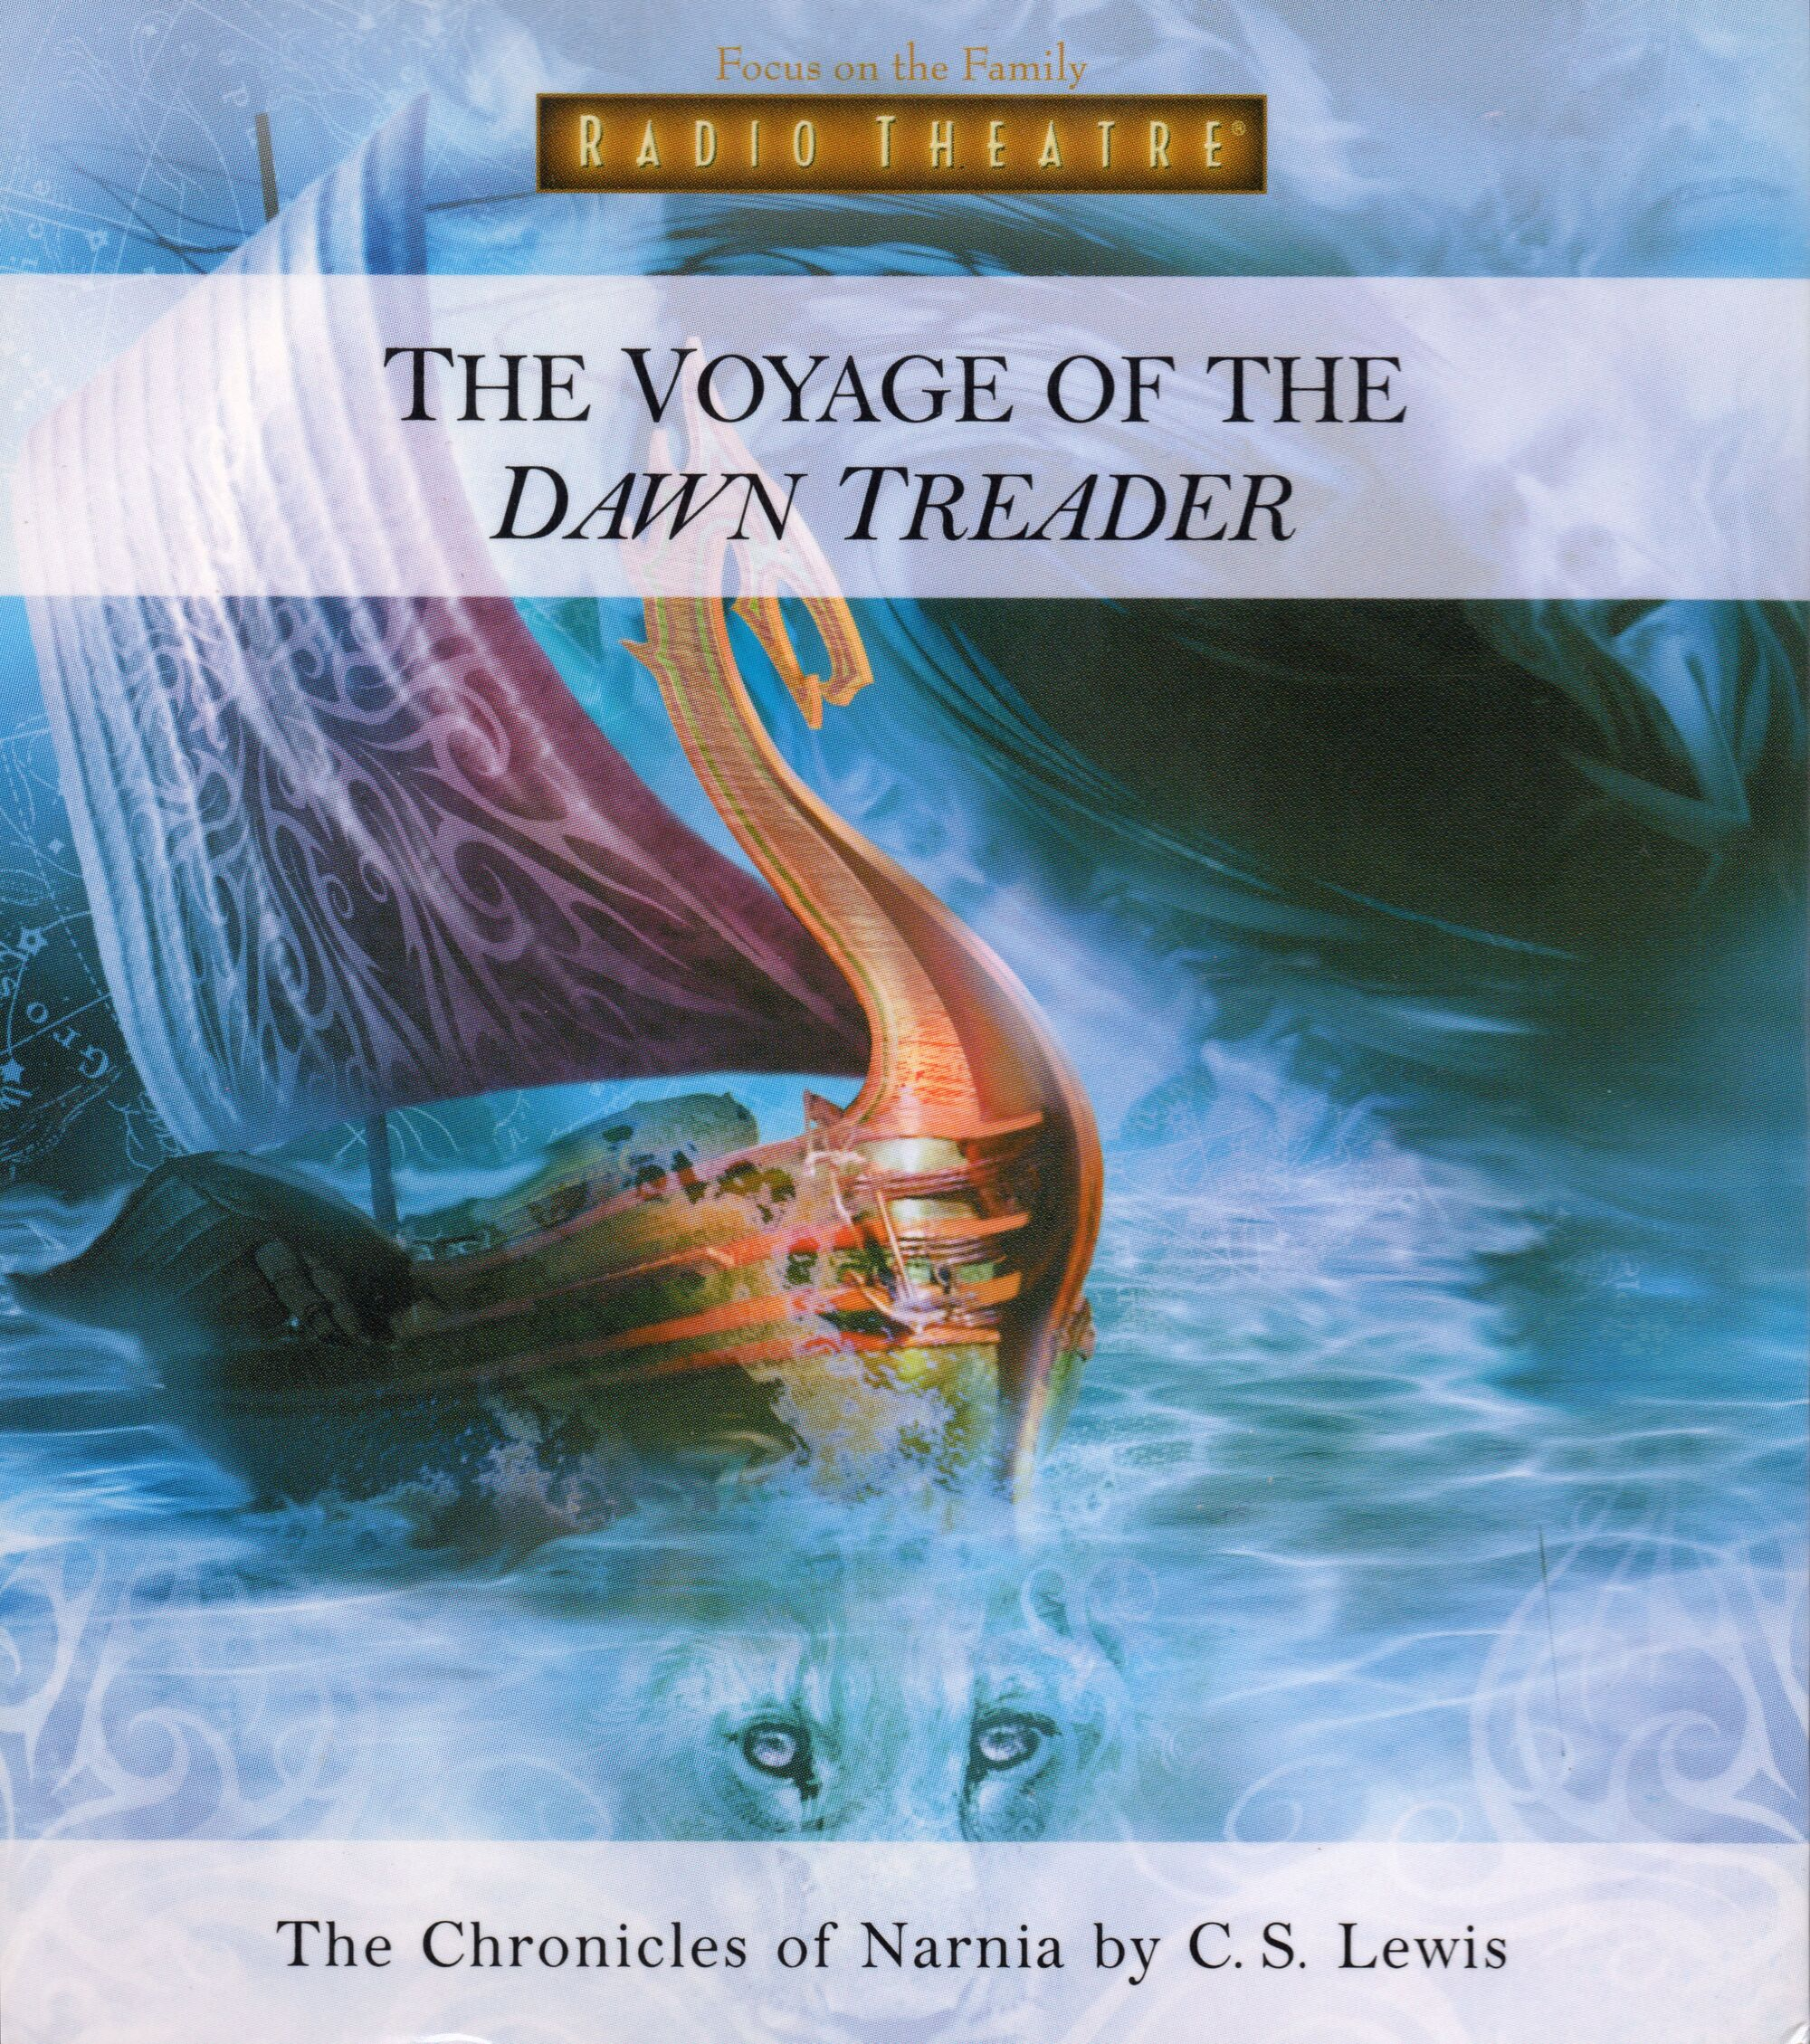 the voyage of the dawn treader focus on the family radio theatre